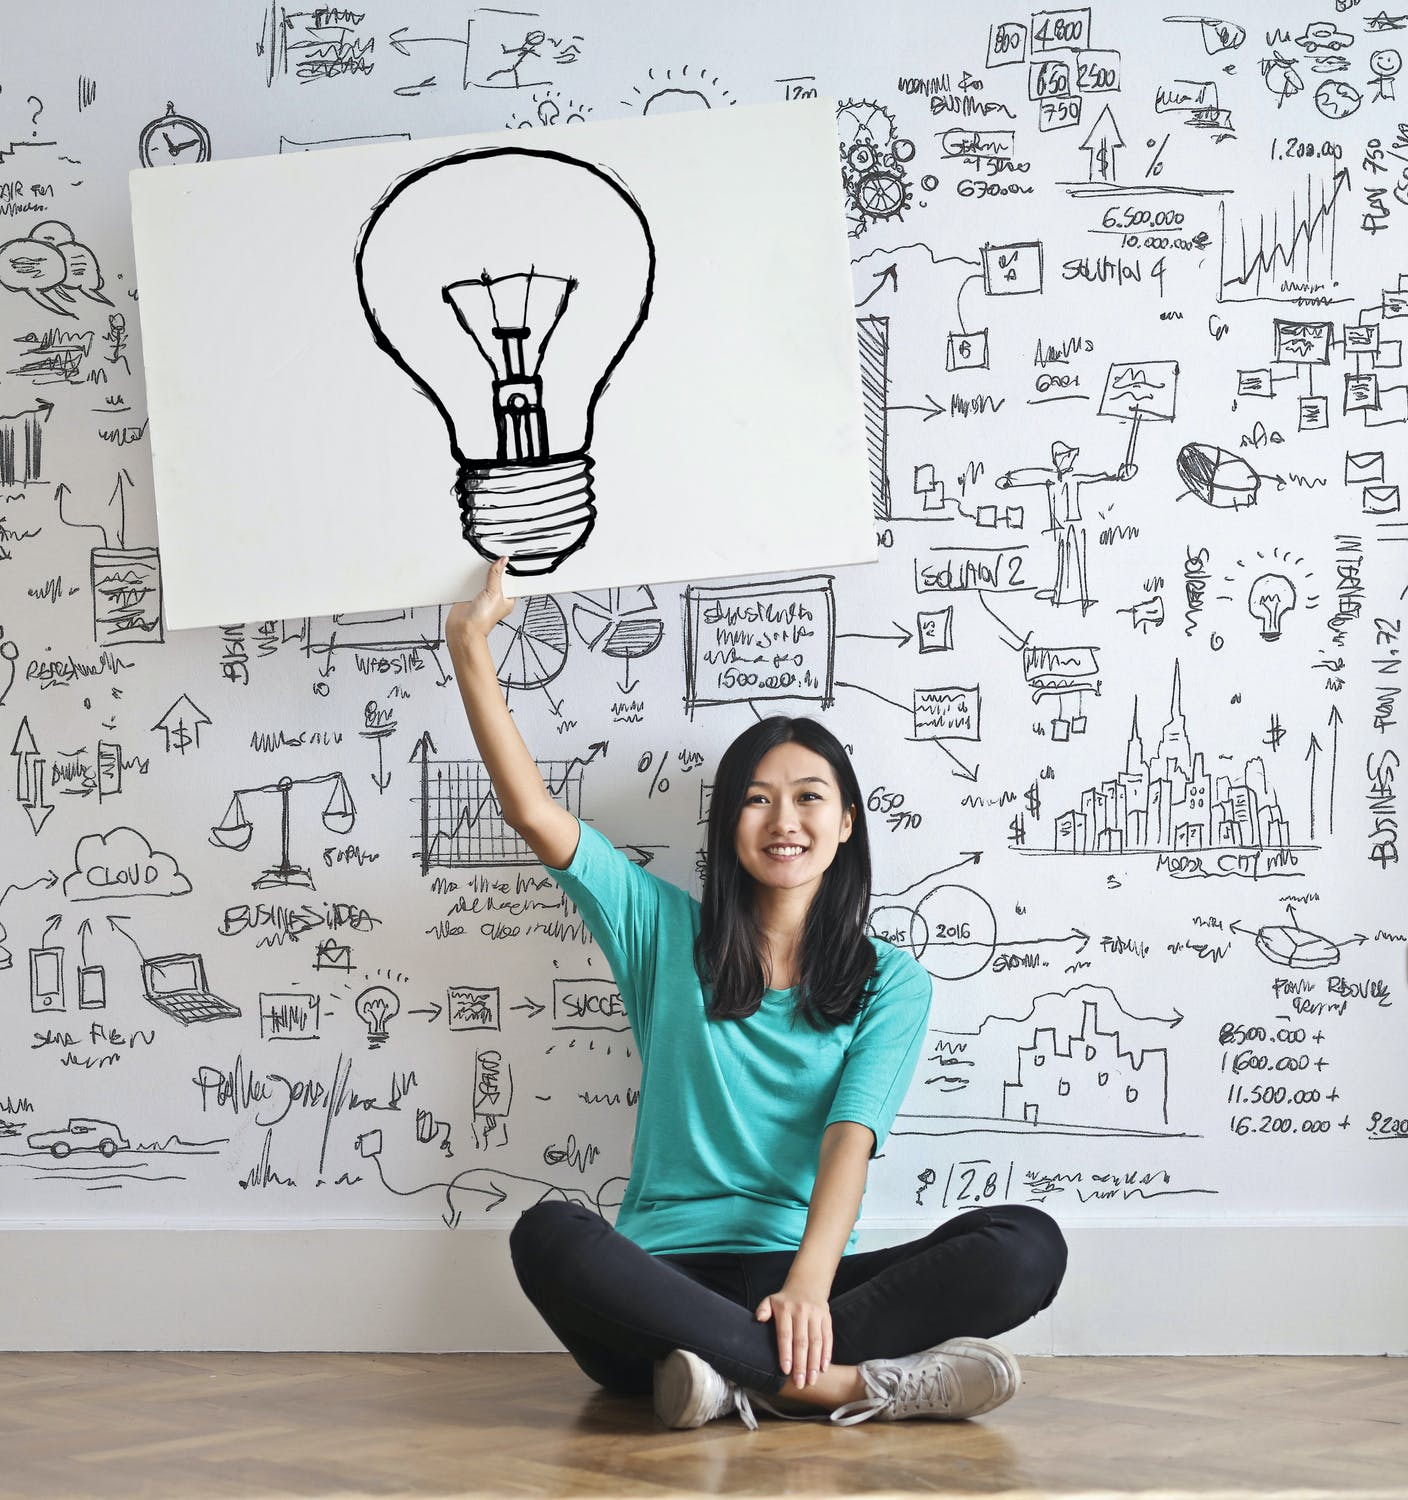 How to Make Your Ideas Sound Important